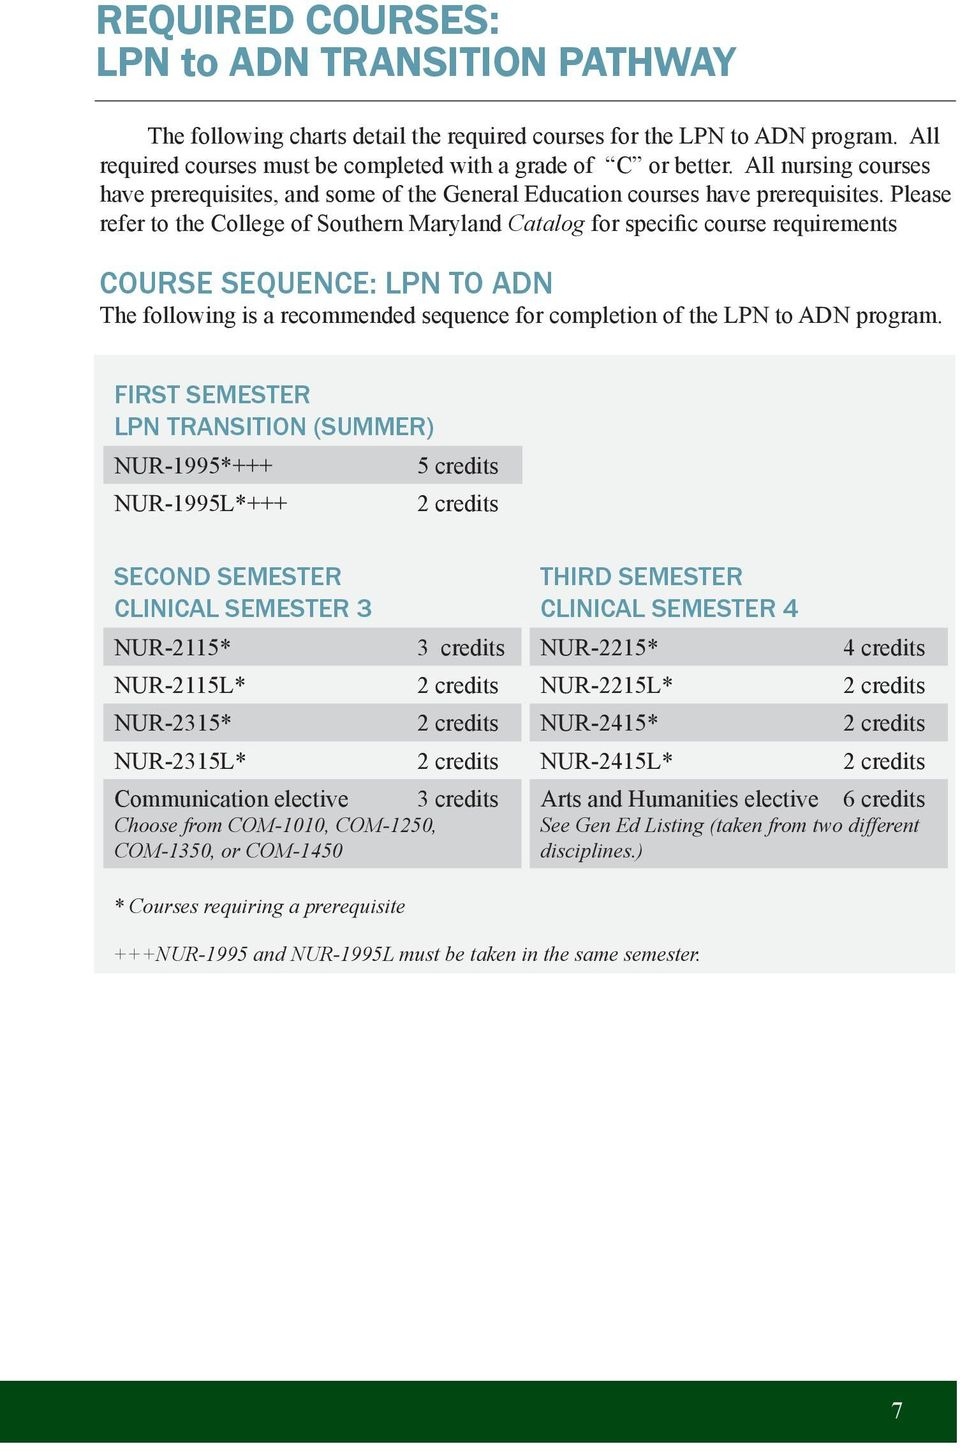 Please refer to the College of Southern Maryland Catalog for specific course requirements COURSE SEQUENCE: LPN TO ADN The following is a recommended sequence for completion of the LPN to ADN program.